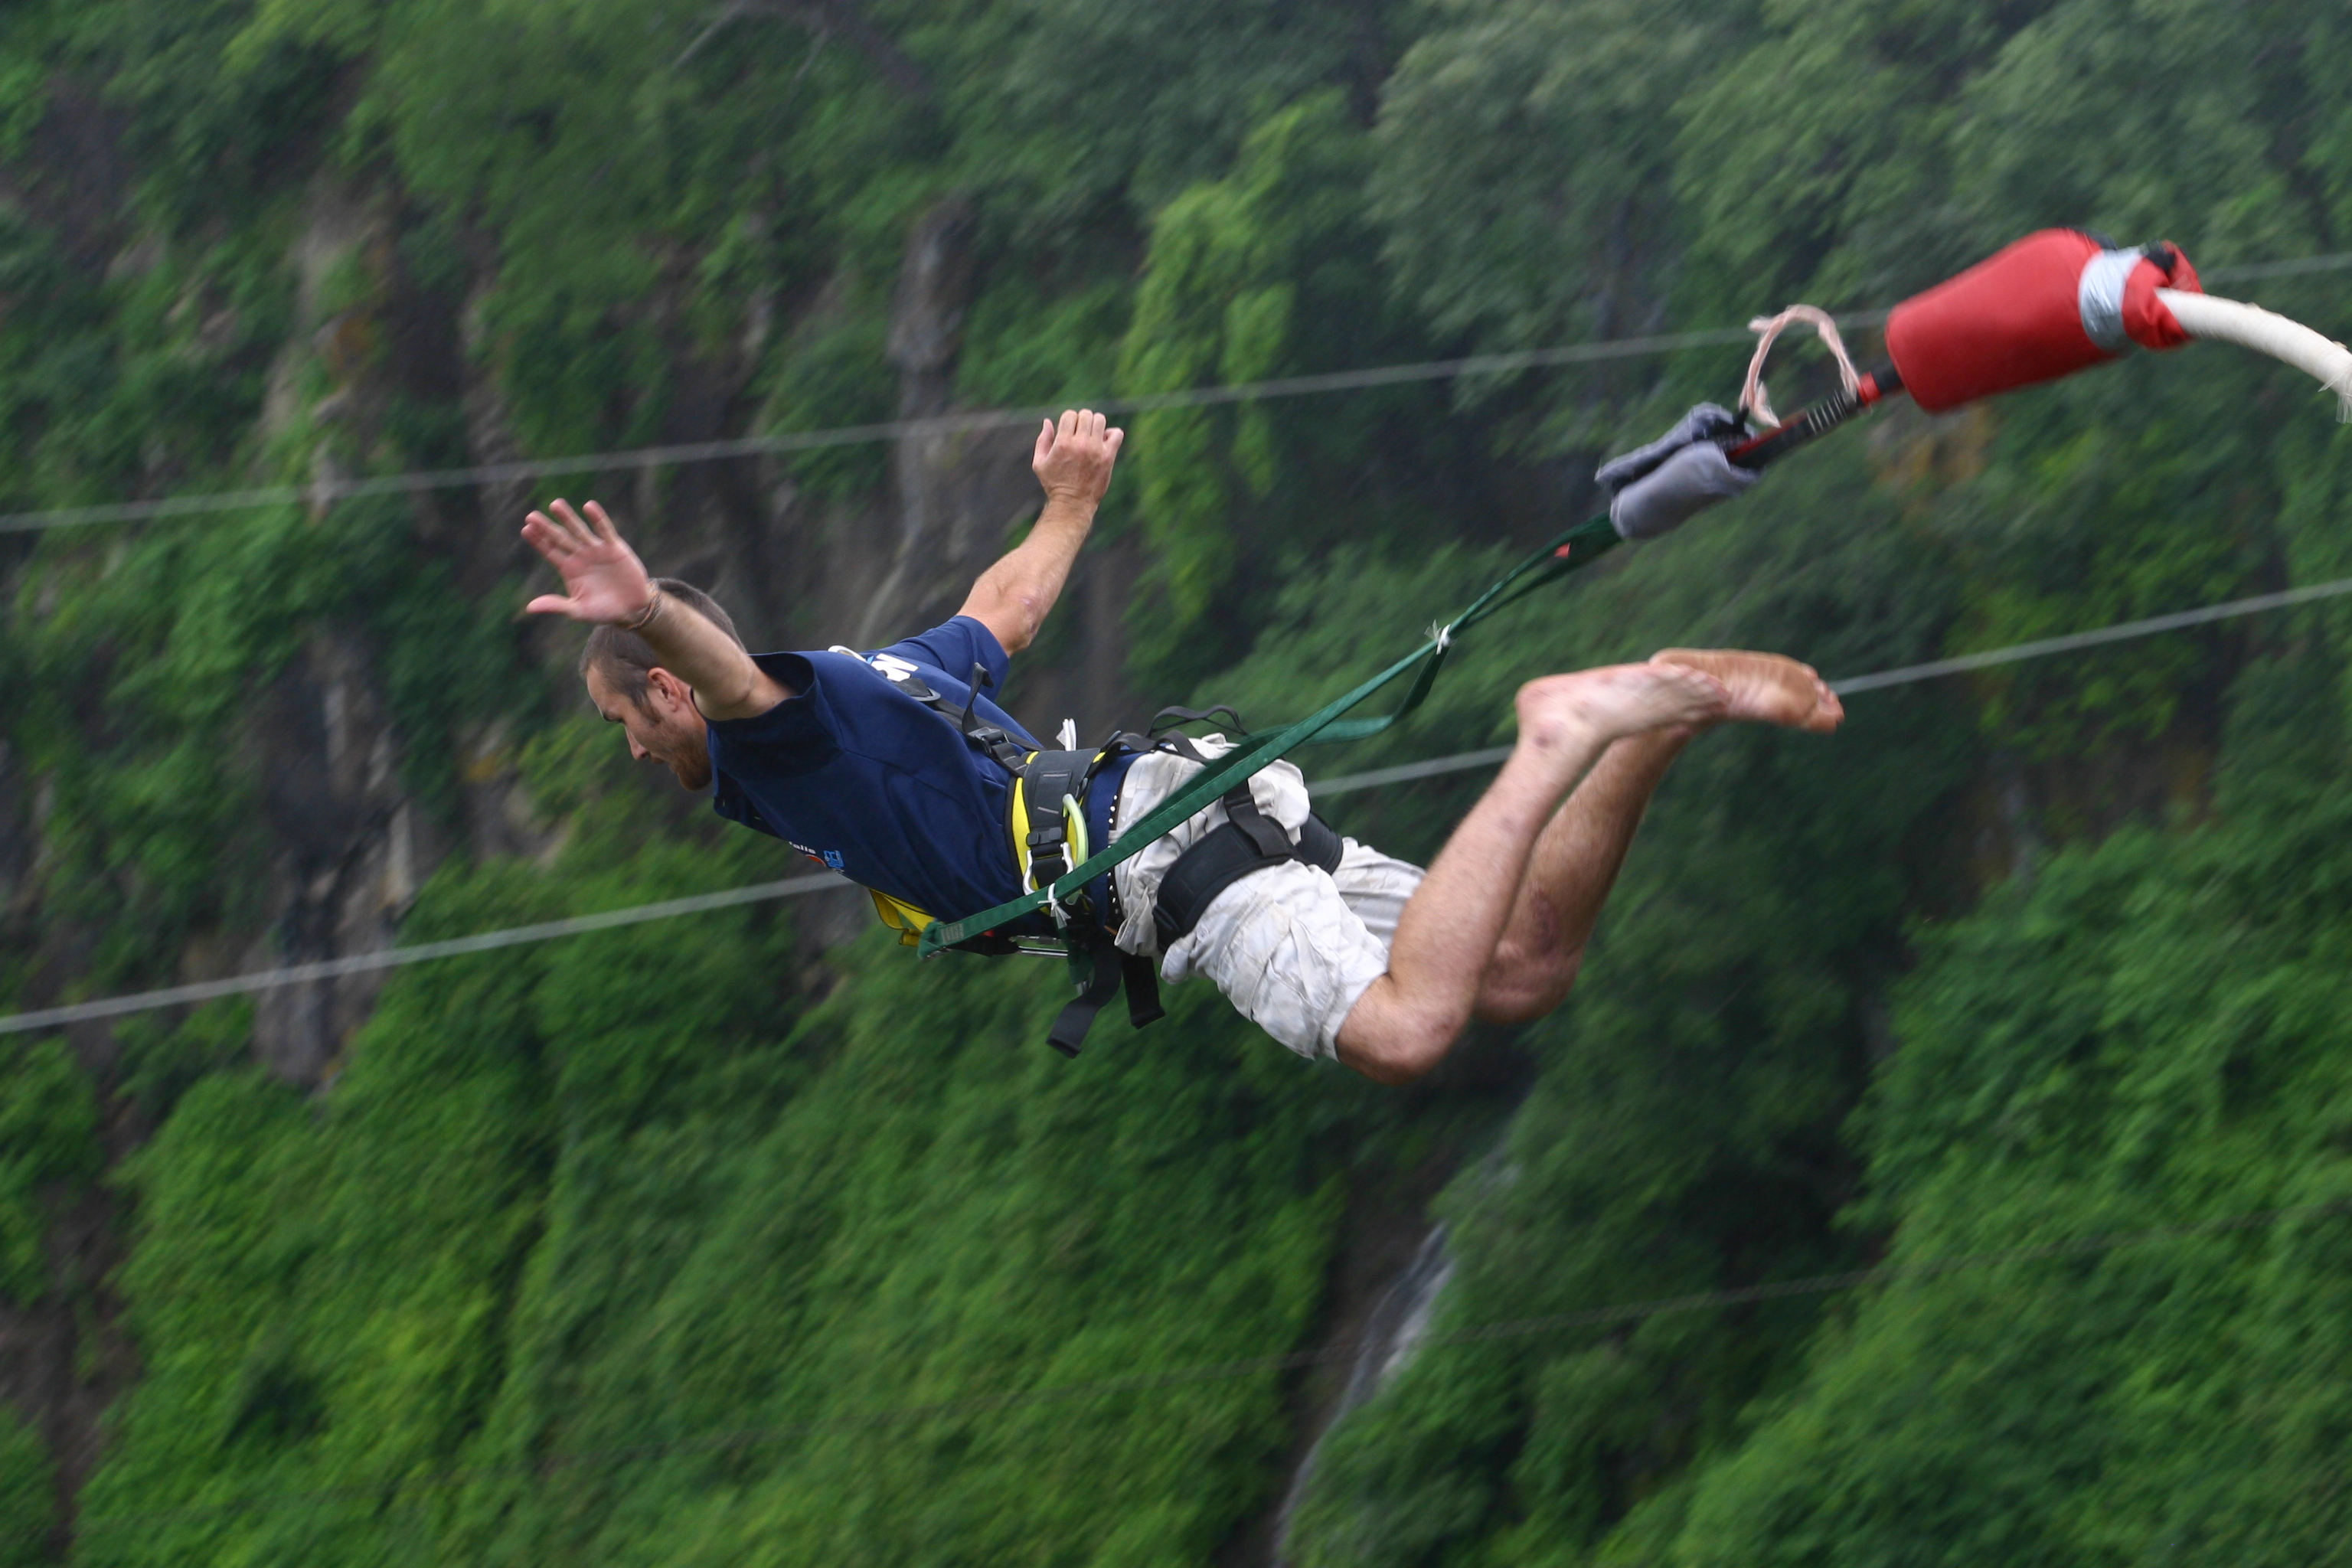 Zambia Extreme Sports - Take the plunge 8 best places in the world to bungee jump